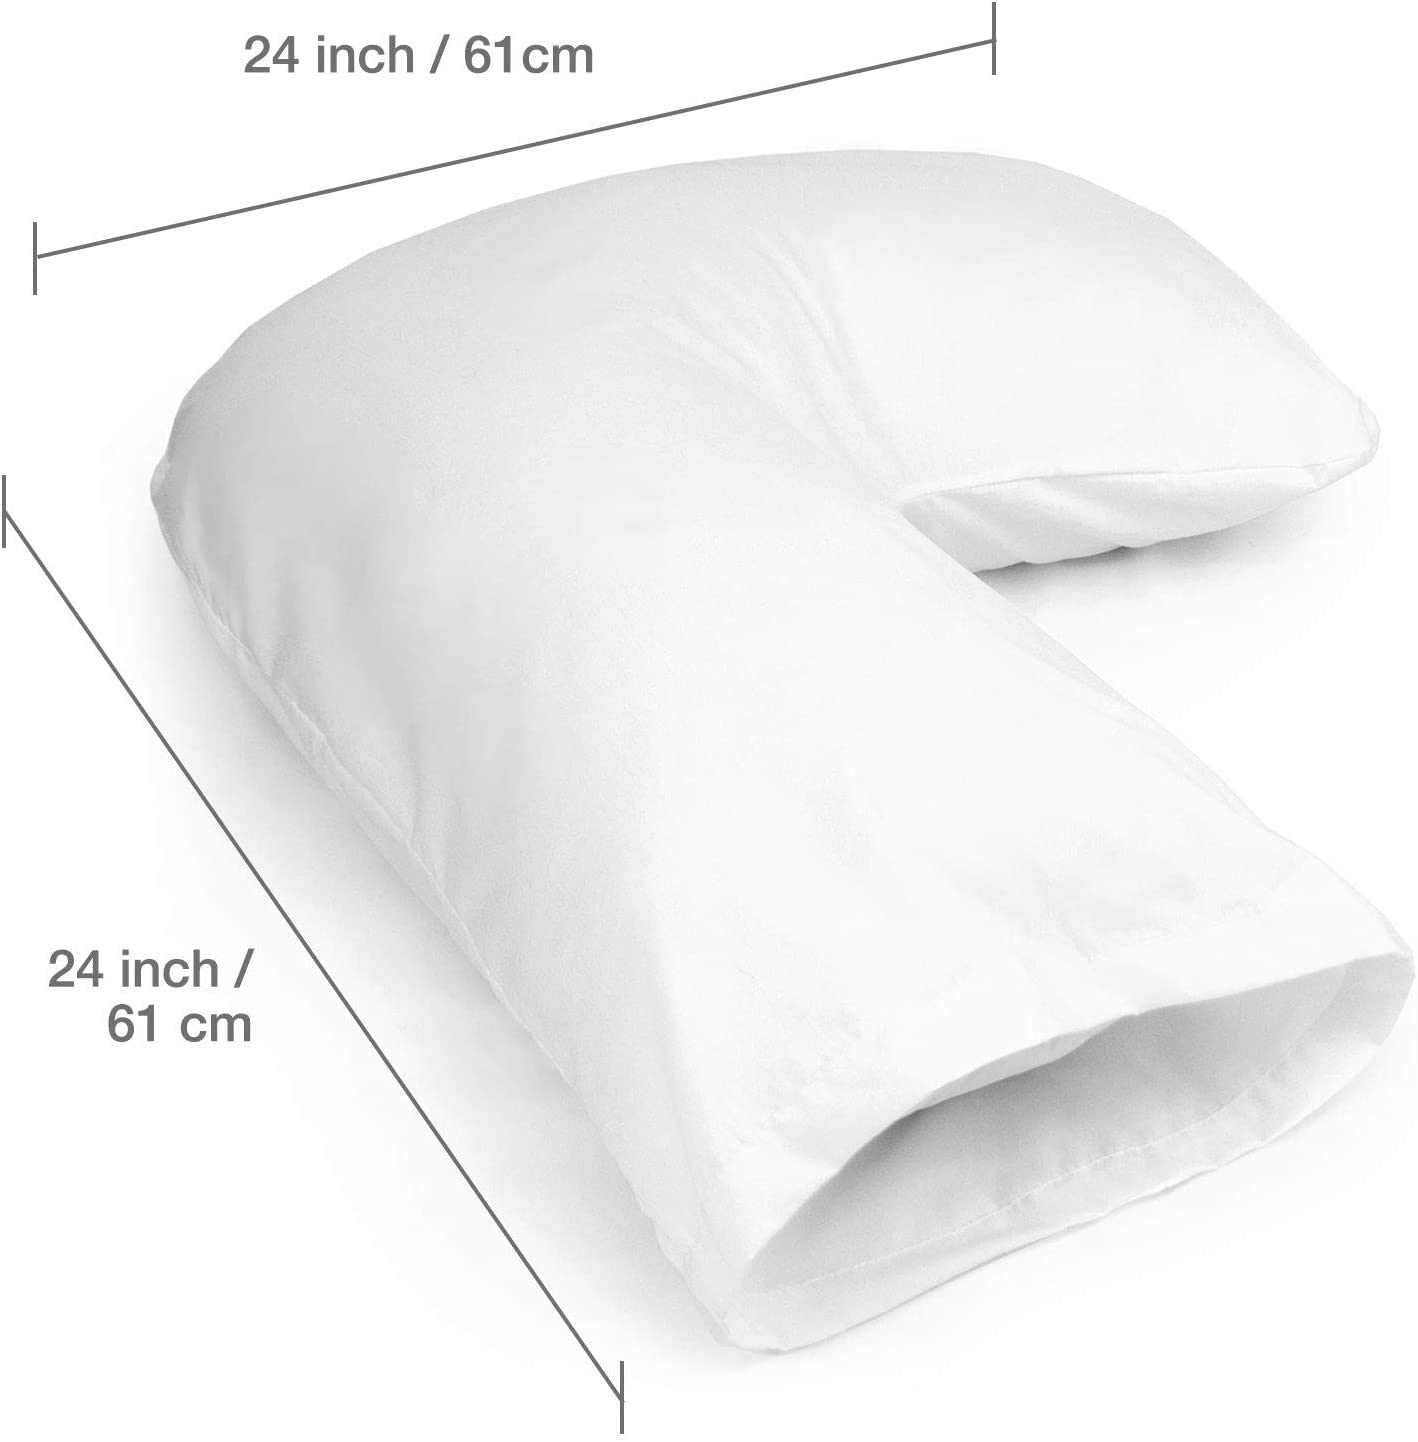 DMI Hugg A Pillow Hypoallergenic Bed